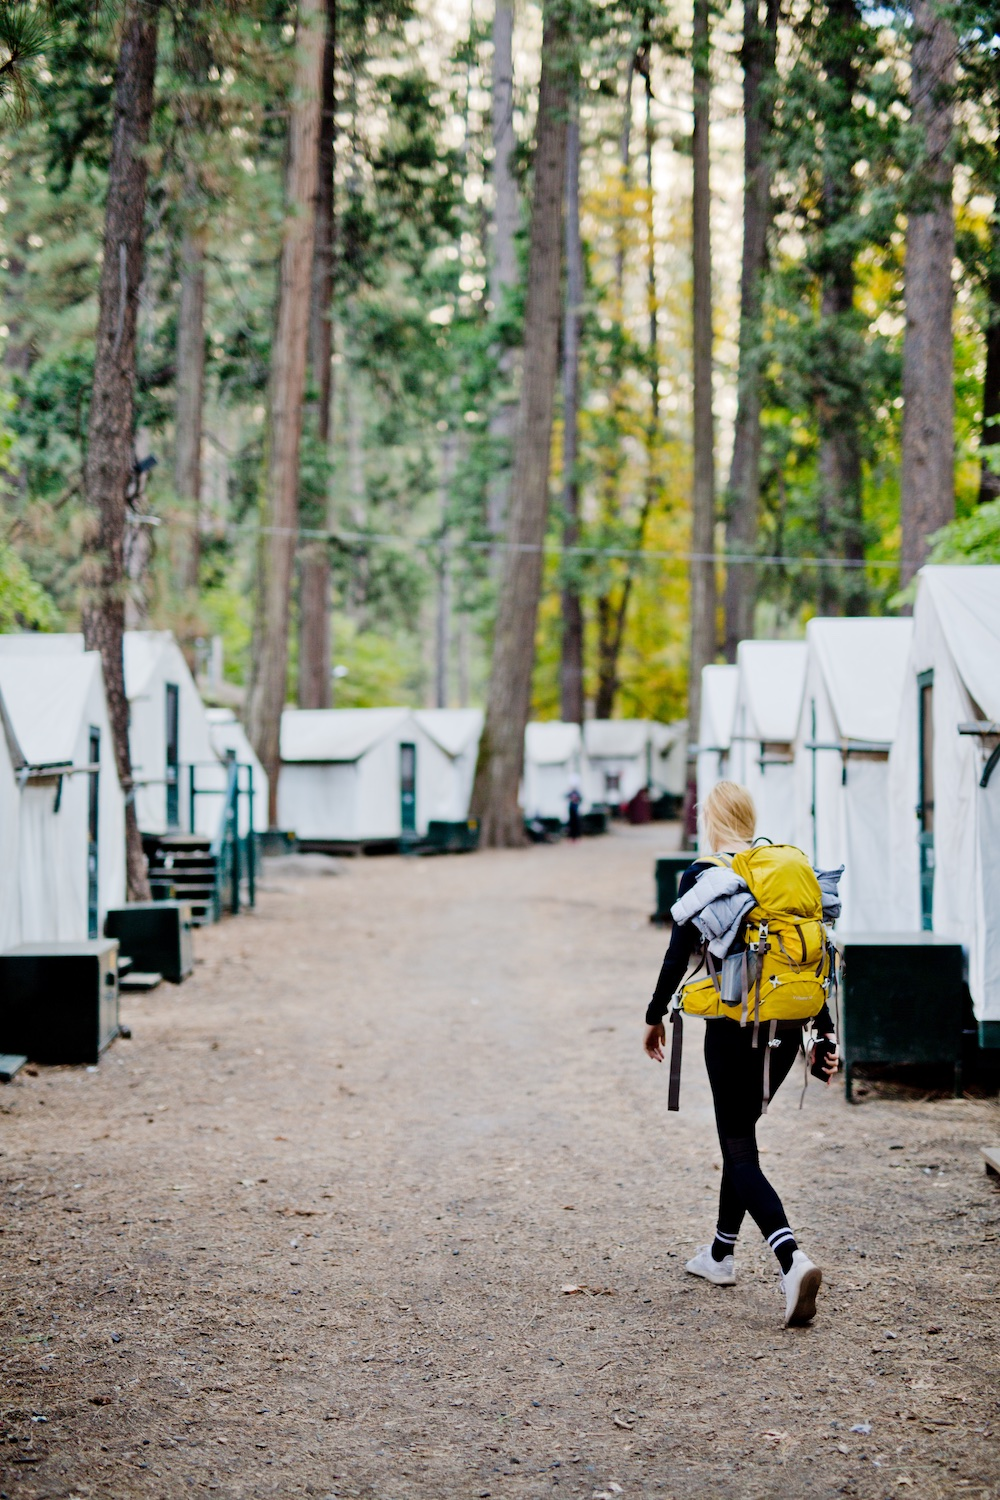 Yosemite Valley Hike Hike Tips Accommodation Curry Village Lodge | www.thegoldenbun.com